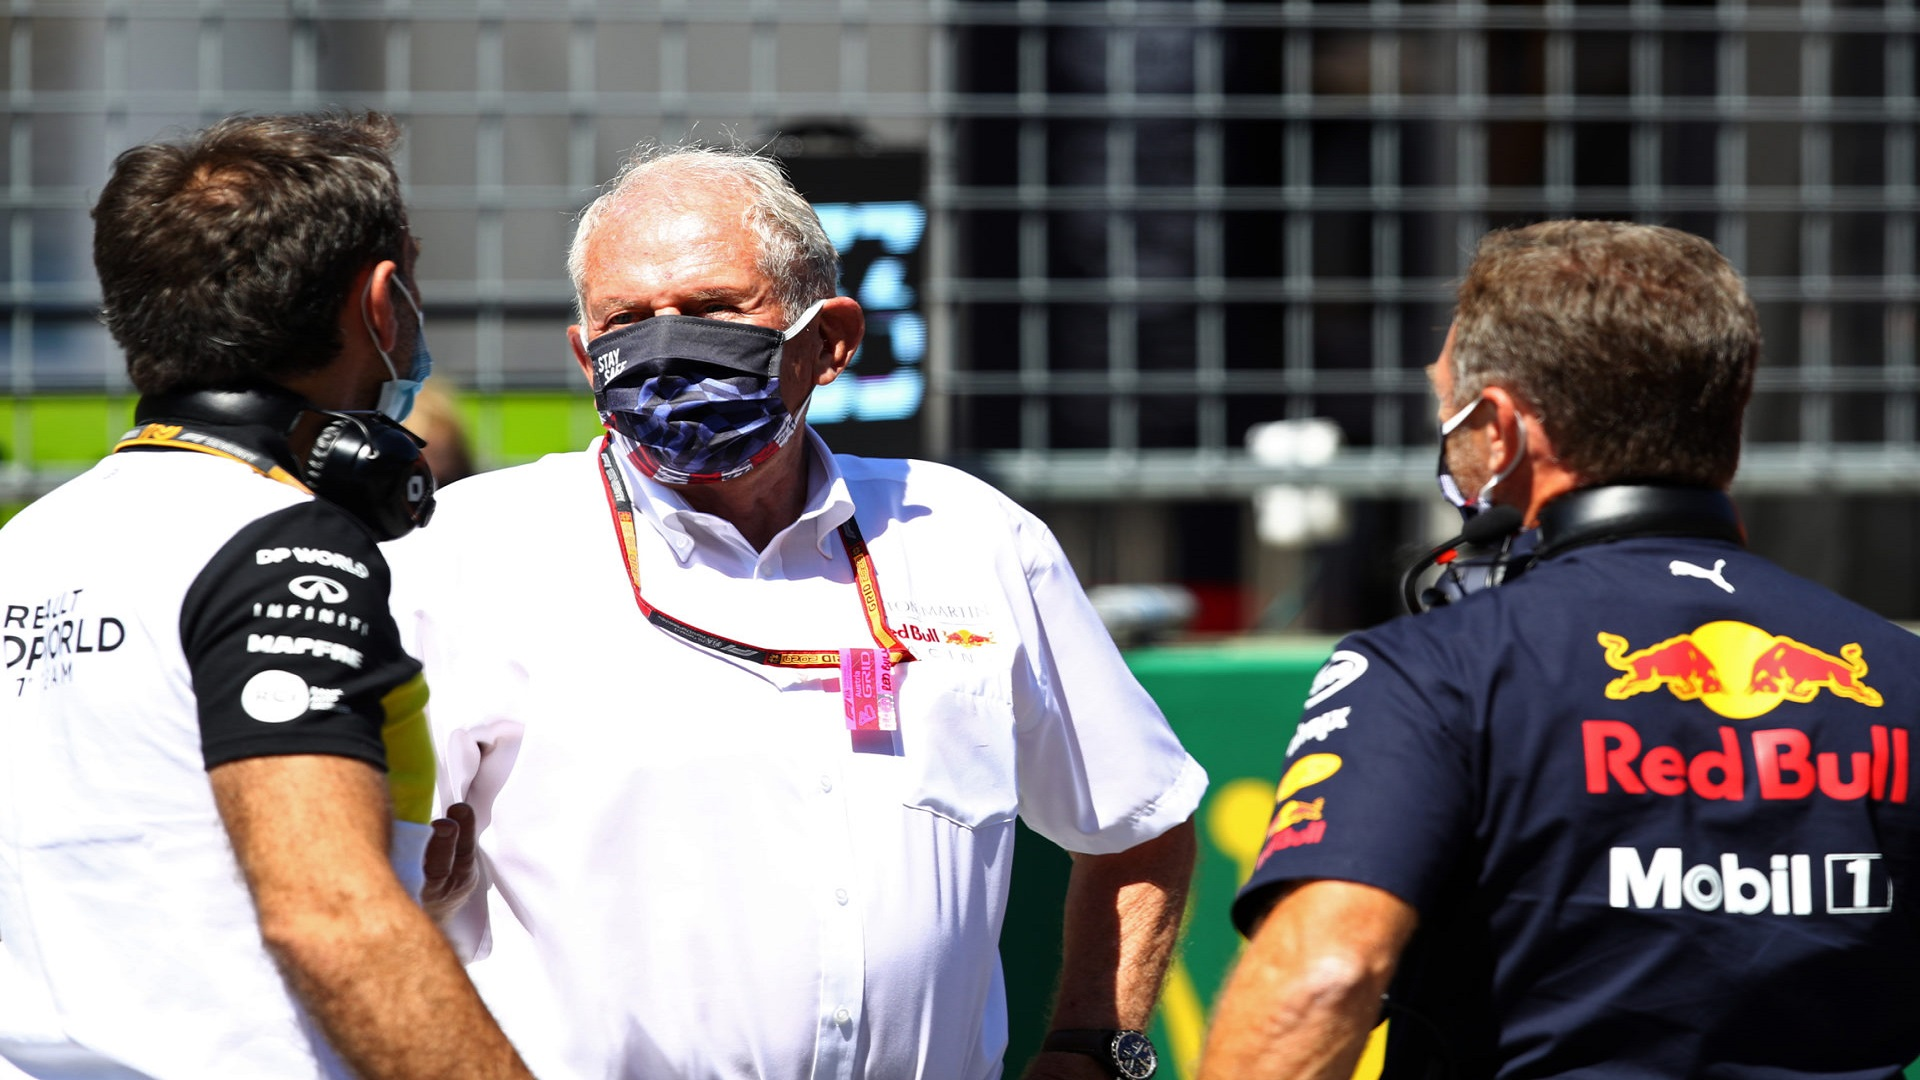 Even In The Worst Case Scenario Red Bull Will Not Be Starting The Season Too Far Behind The Mercedes